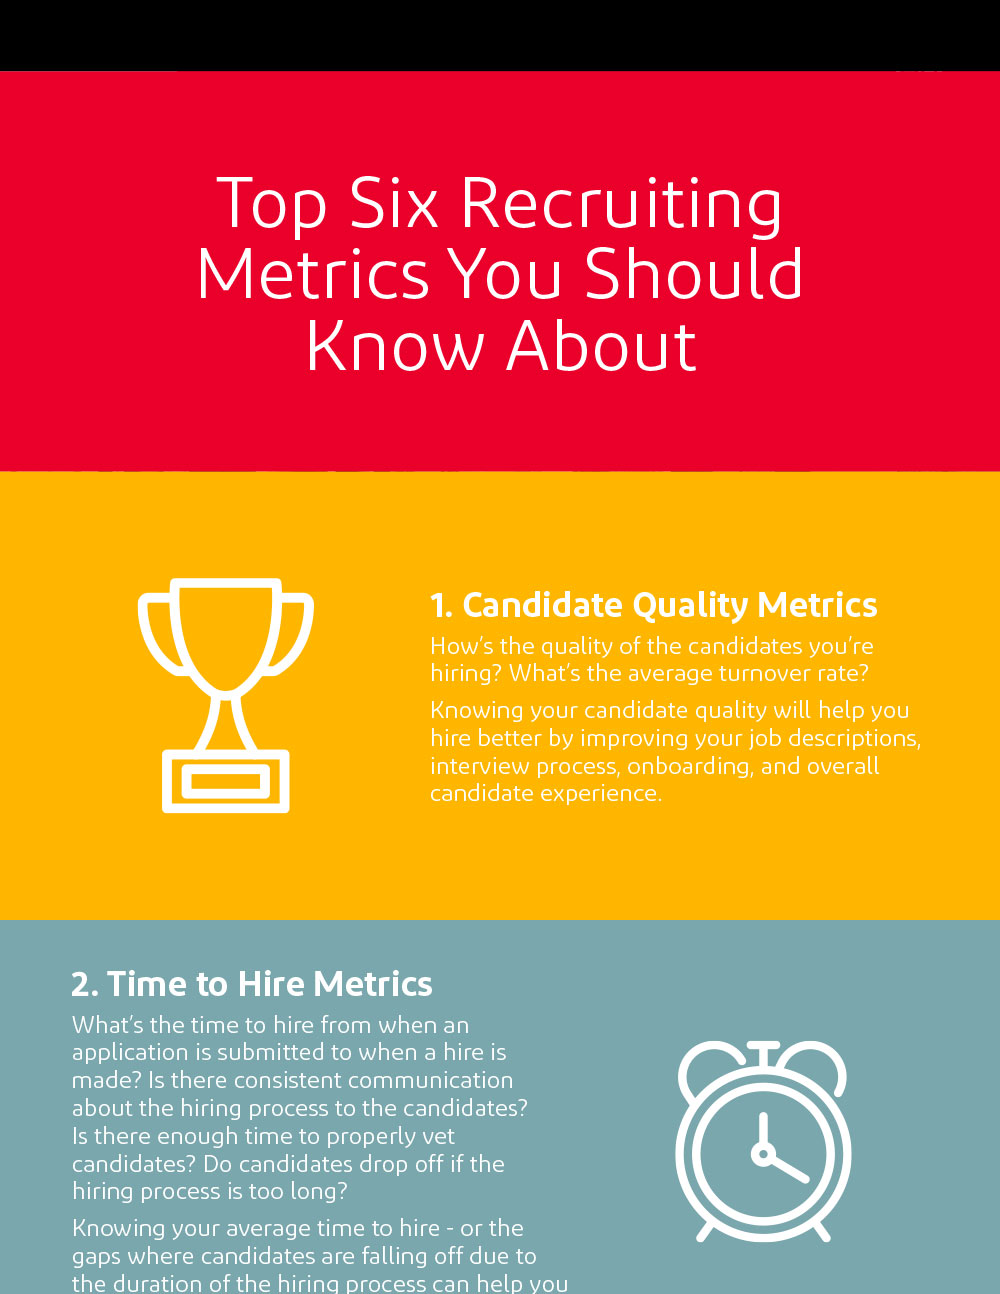 Top Six Recruiting Metrics You Should Know About